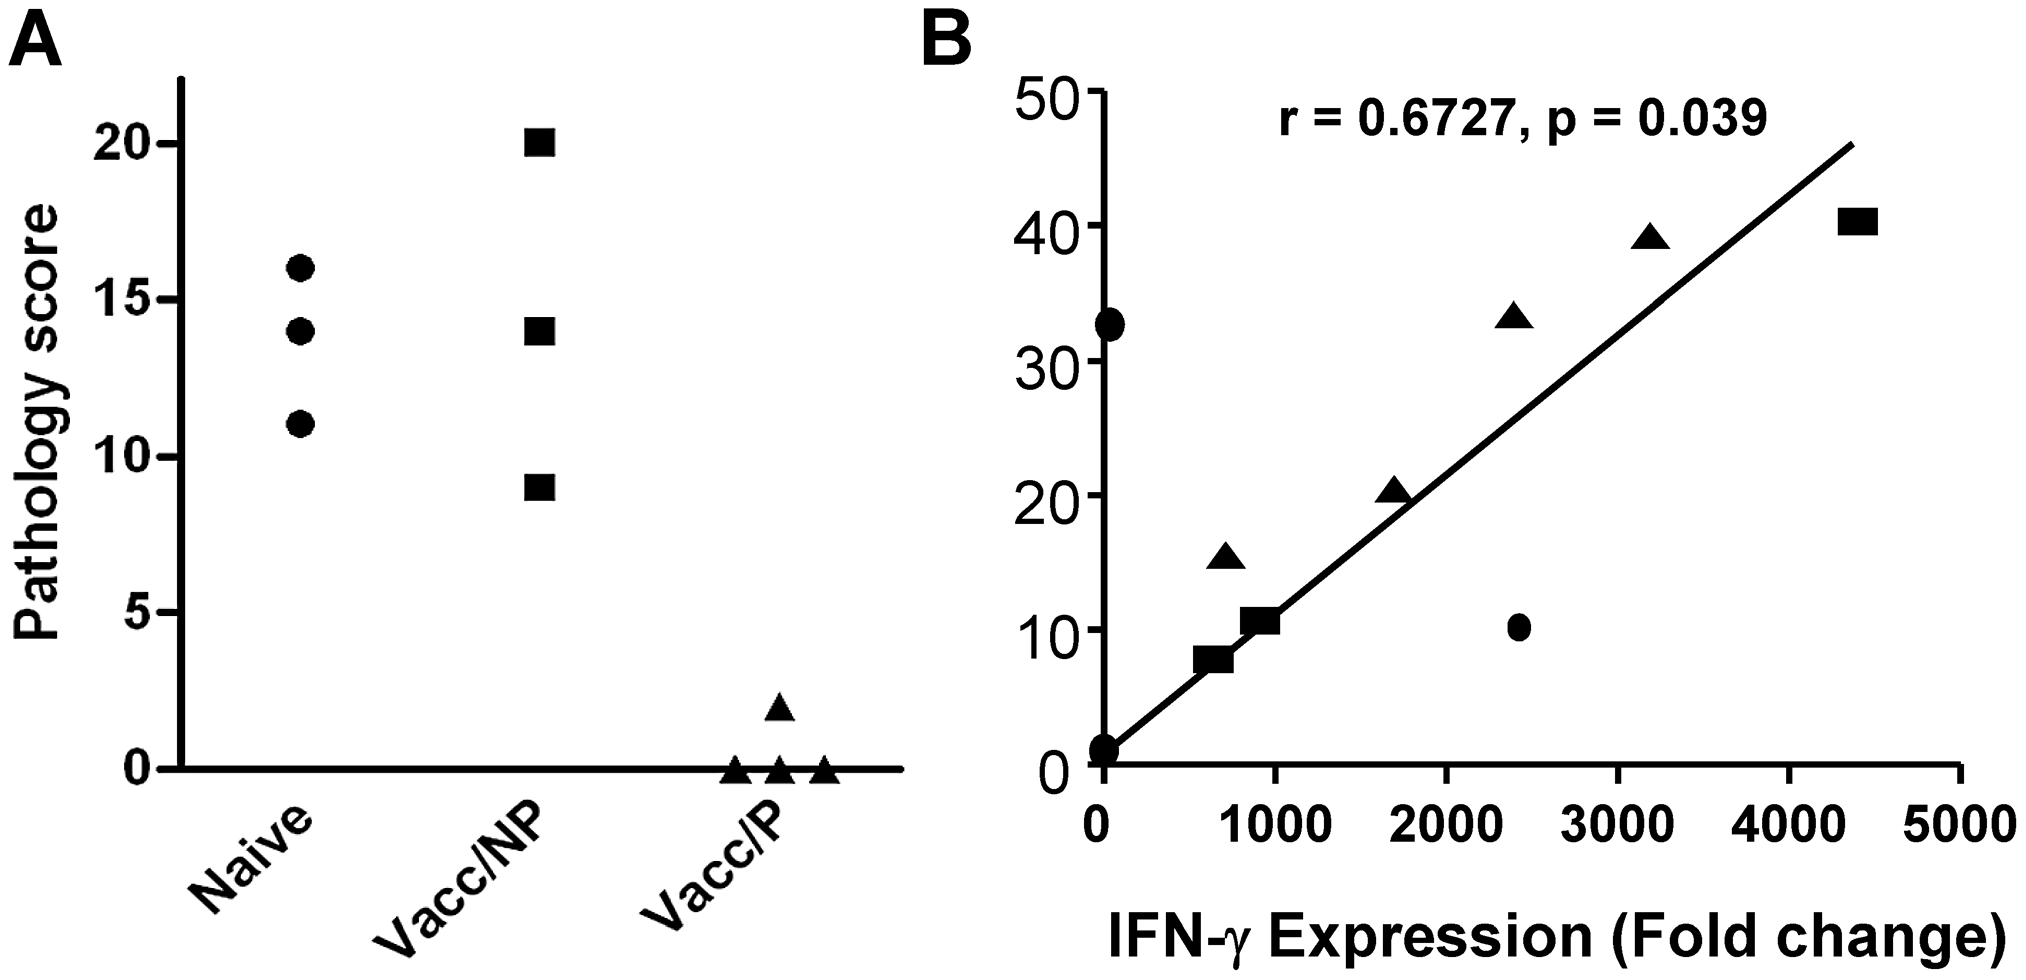 Protection and <i>in vitro</i> IFN-γ responses prior to challenge.